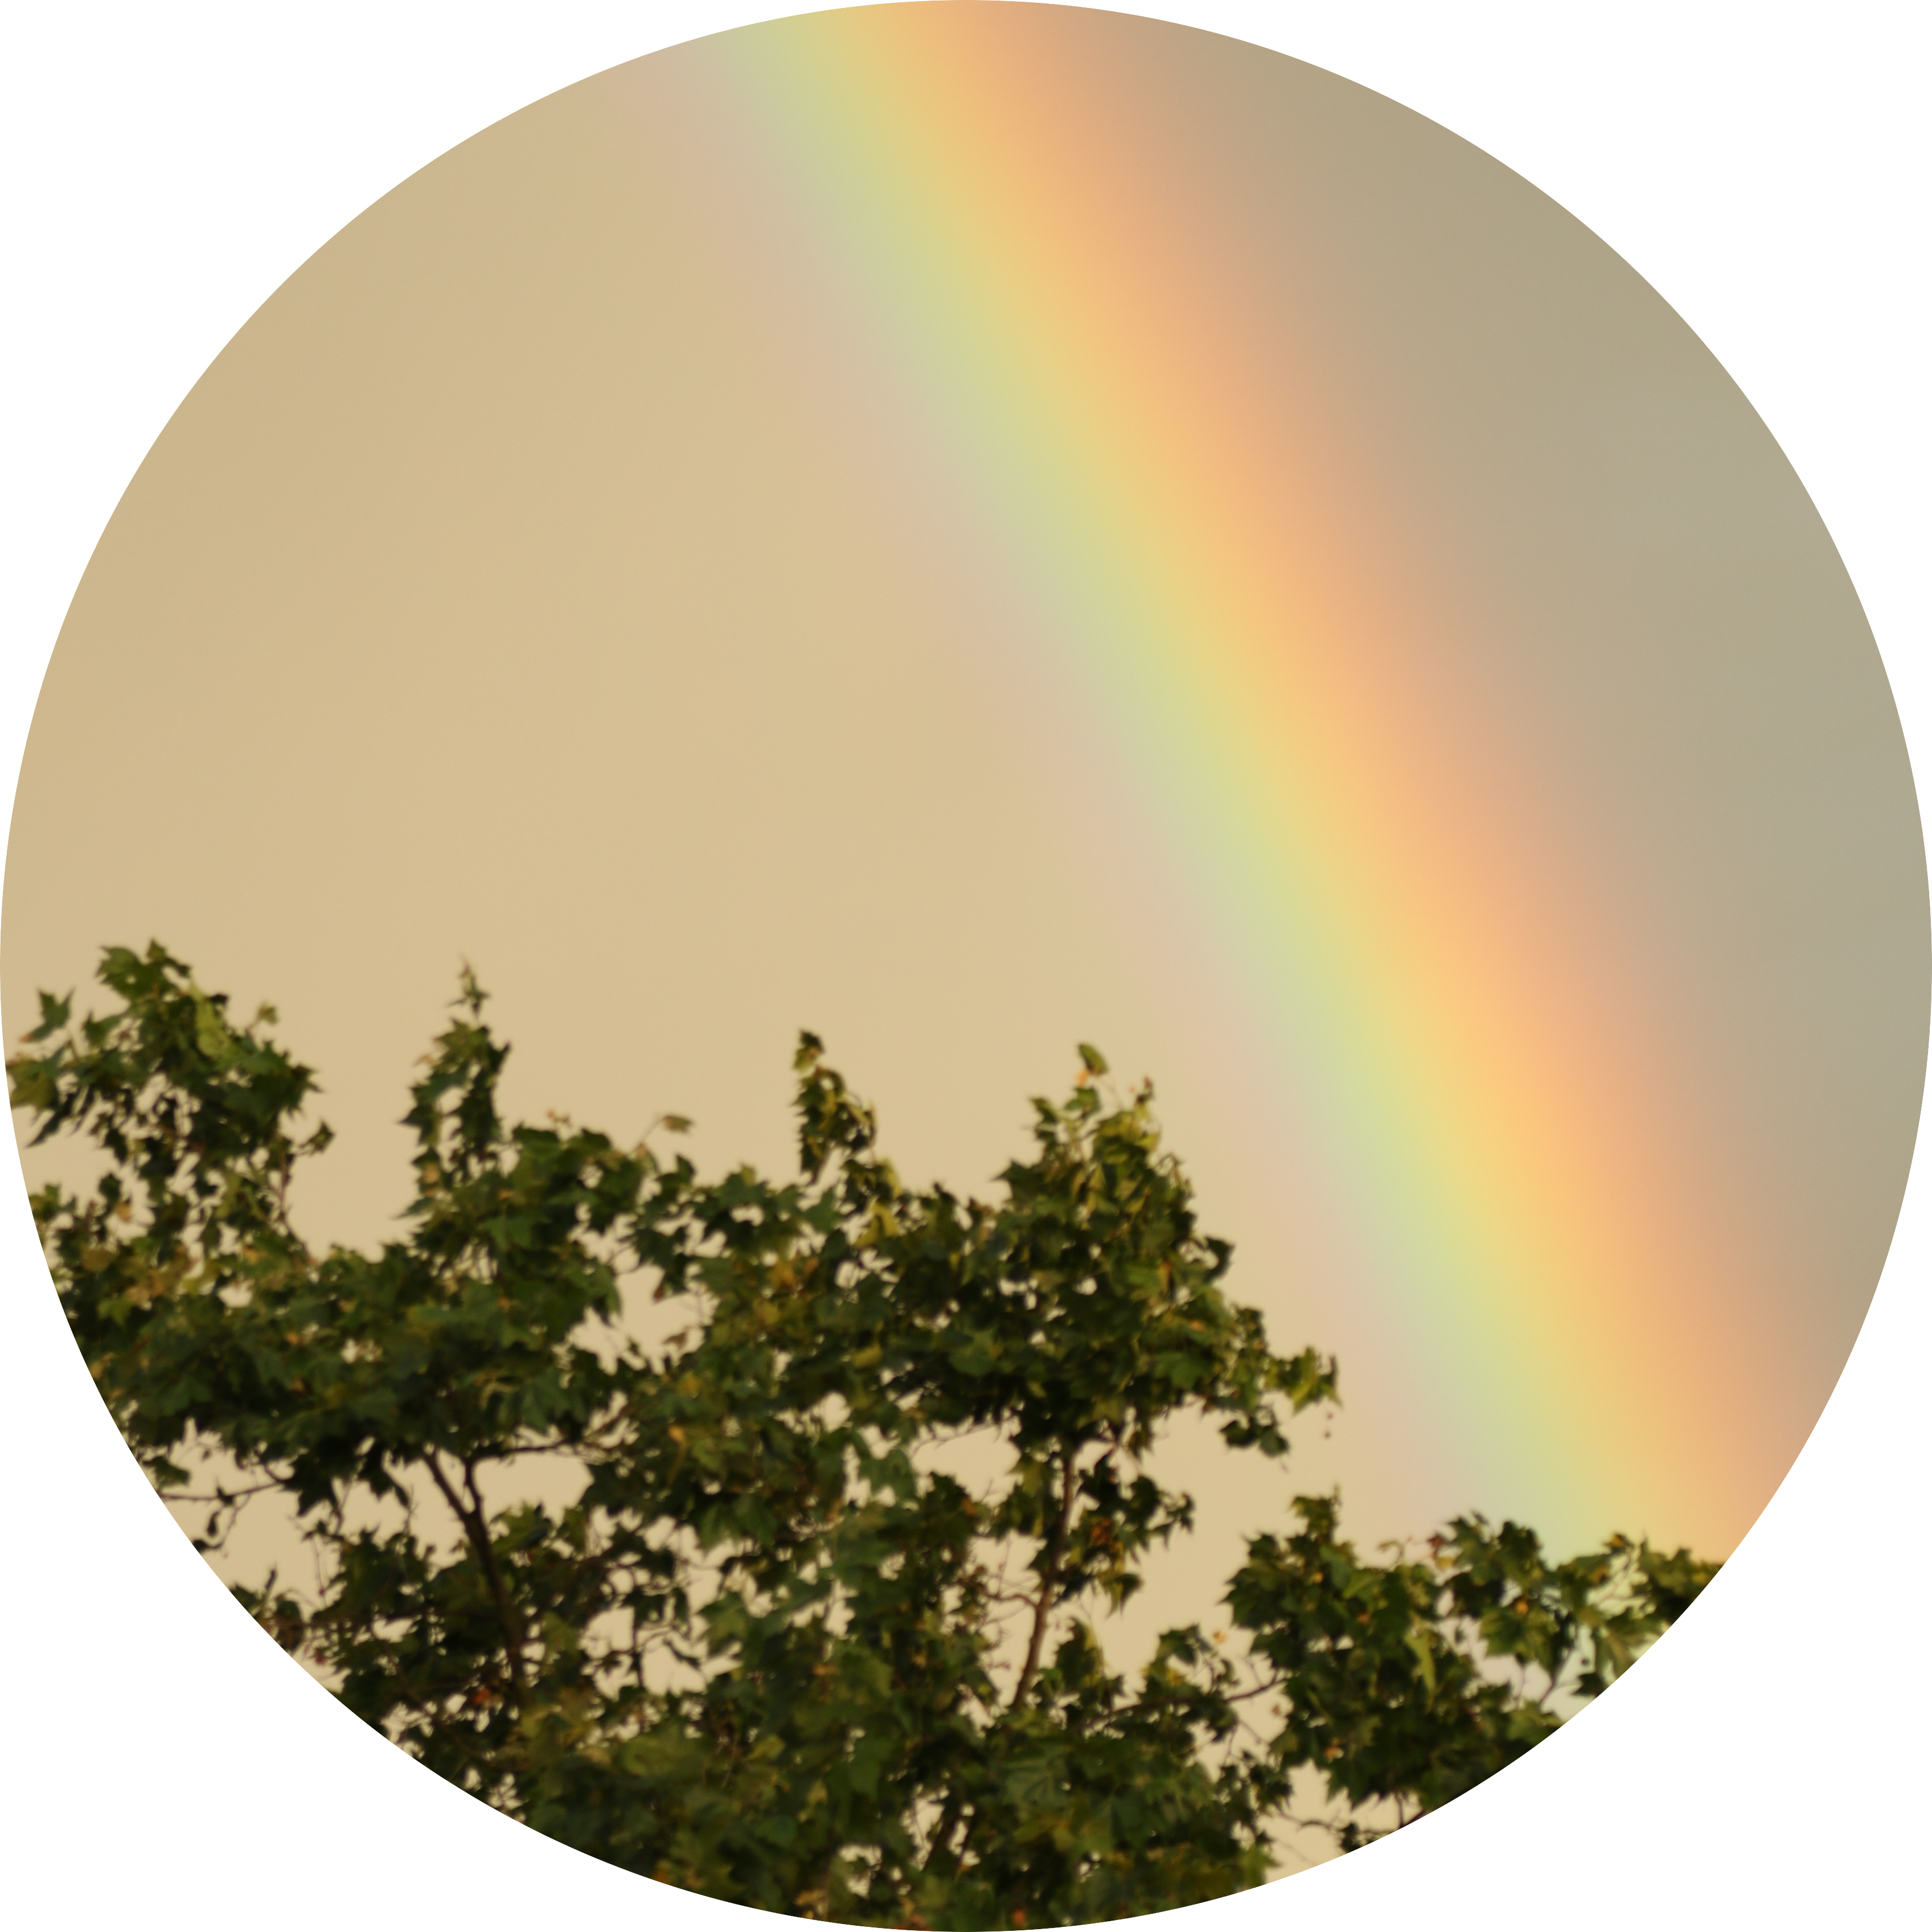 Image of a rainbow behind trees.